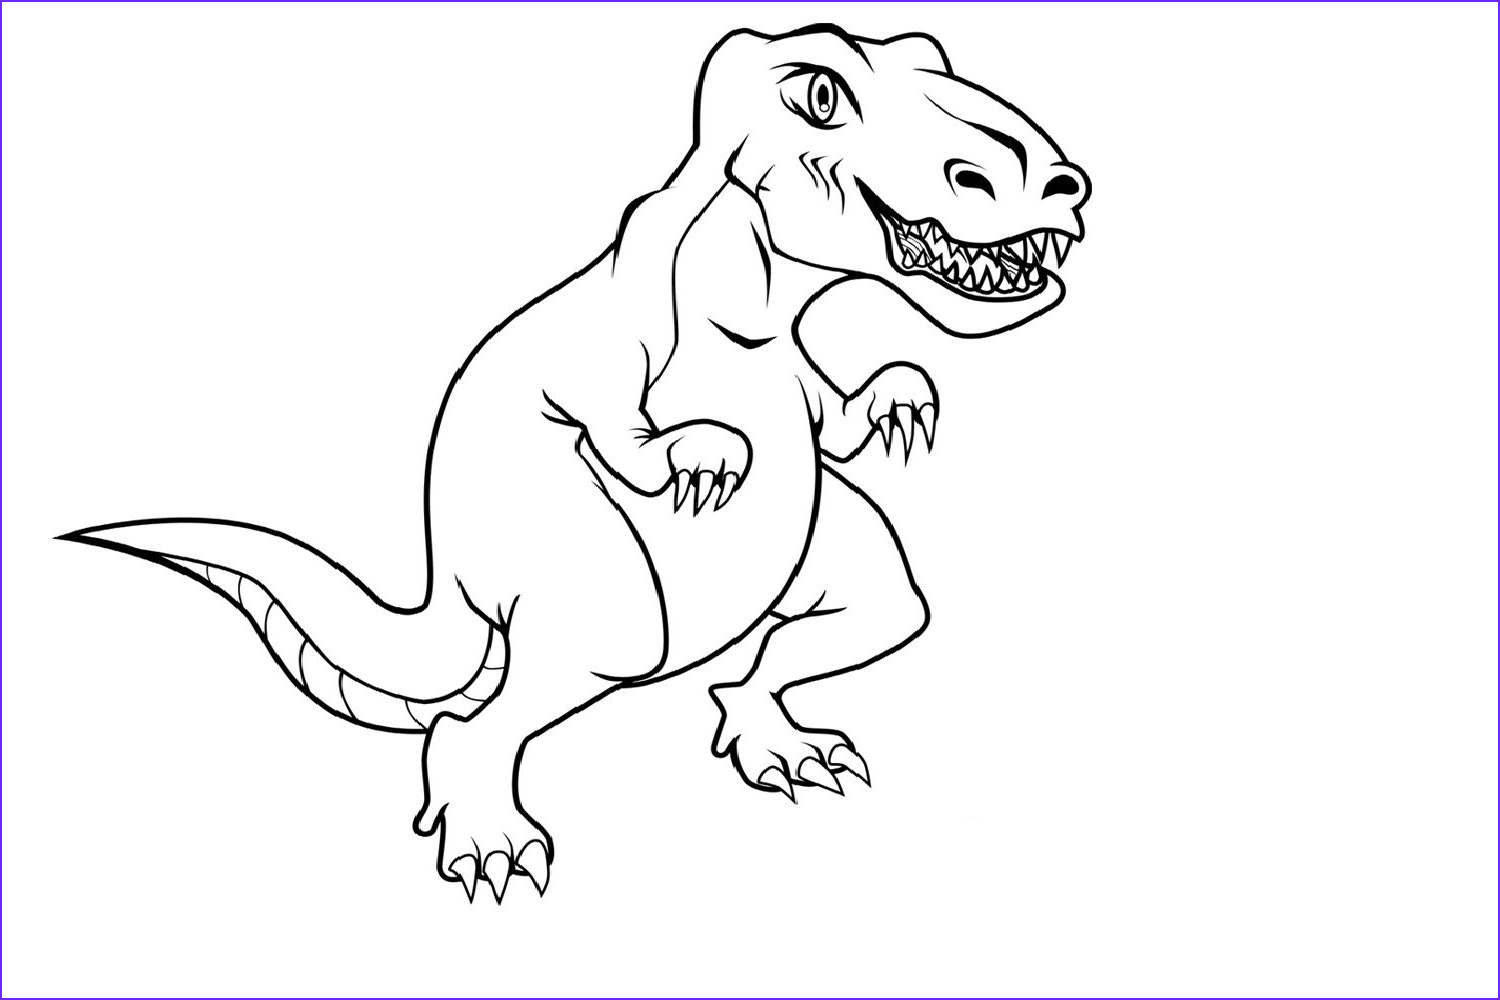 Coloring Pages Dinosaurs Cool Stock Free Printable Dinosaur Coloring Pages for Kids